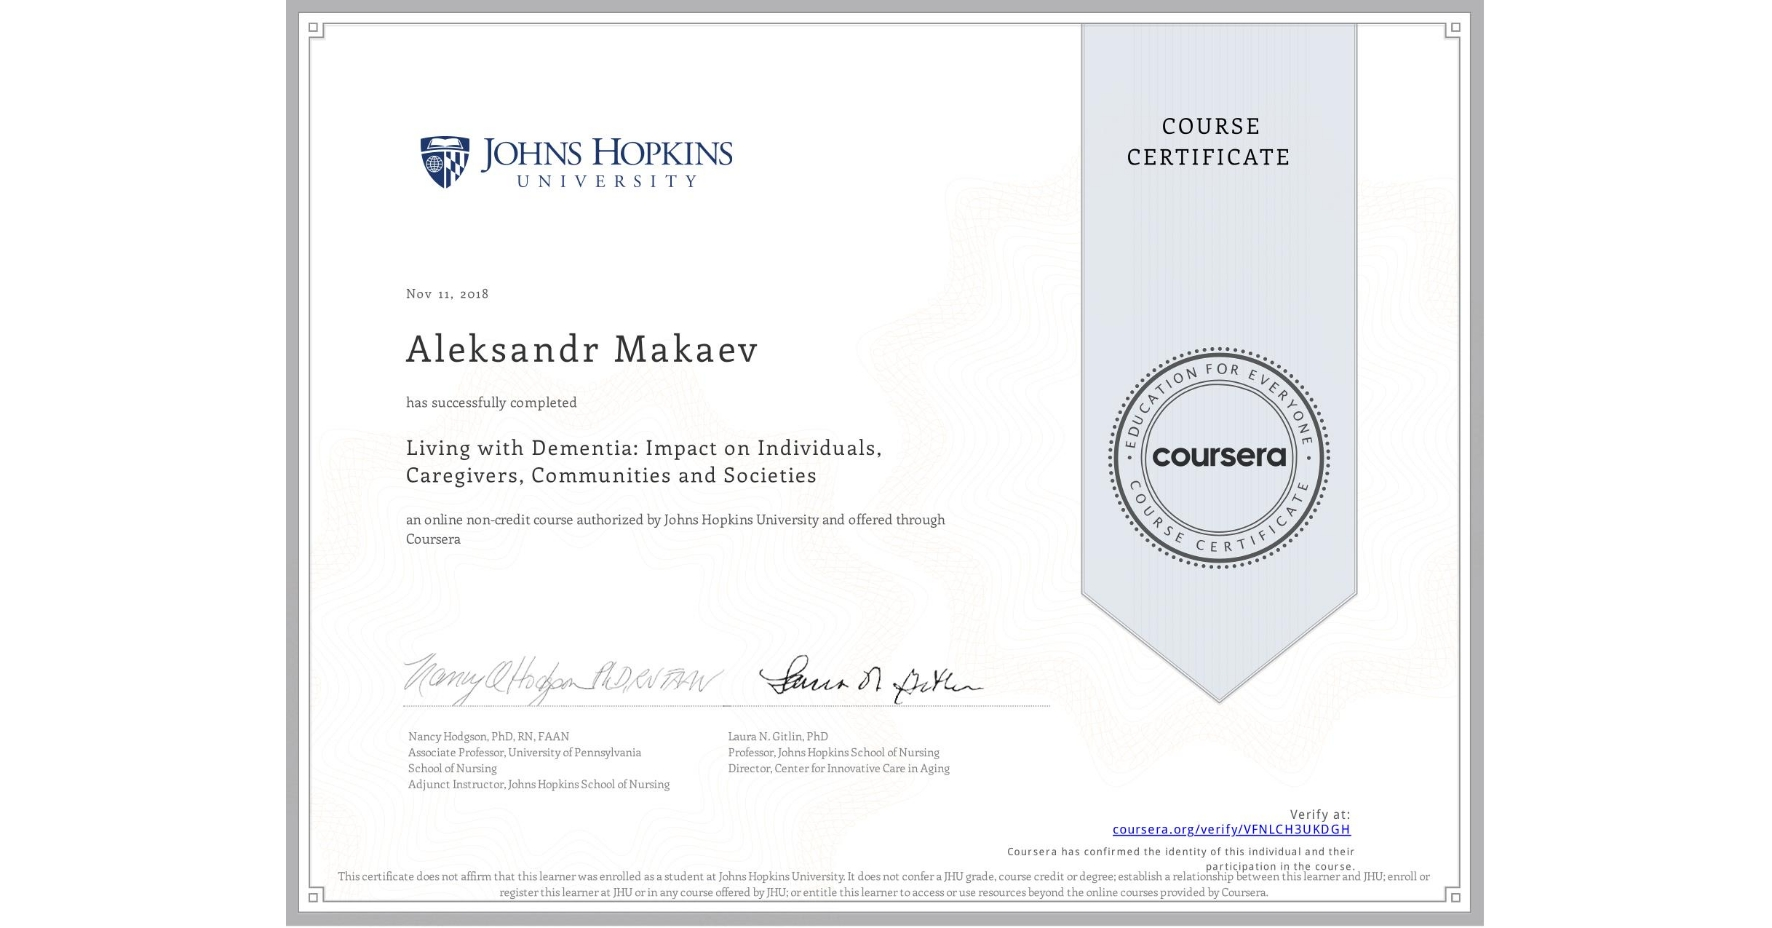 View certificate for Aleksandr Makaev, Living with Dementia: Impact on Individuals, Caregivers, Communities and Societies, an online non-credit course authorized by Johns Hopkins University and offered through Coursera